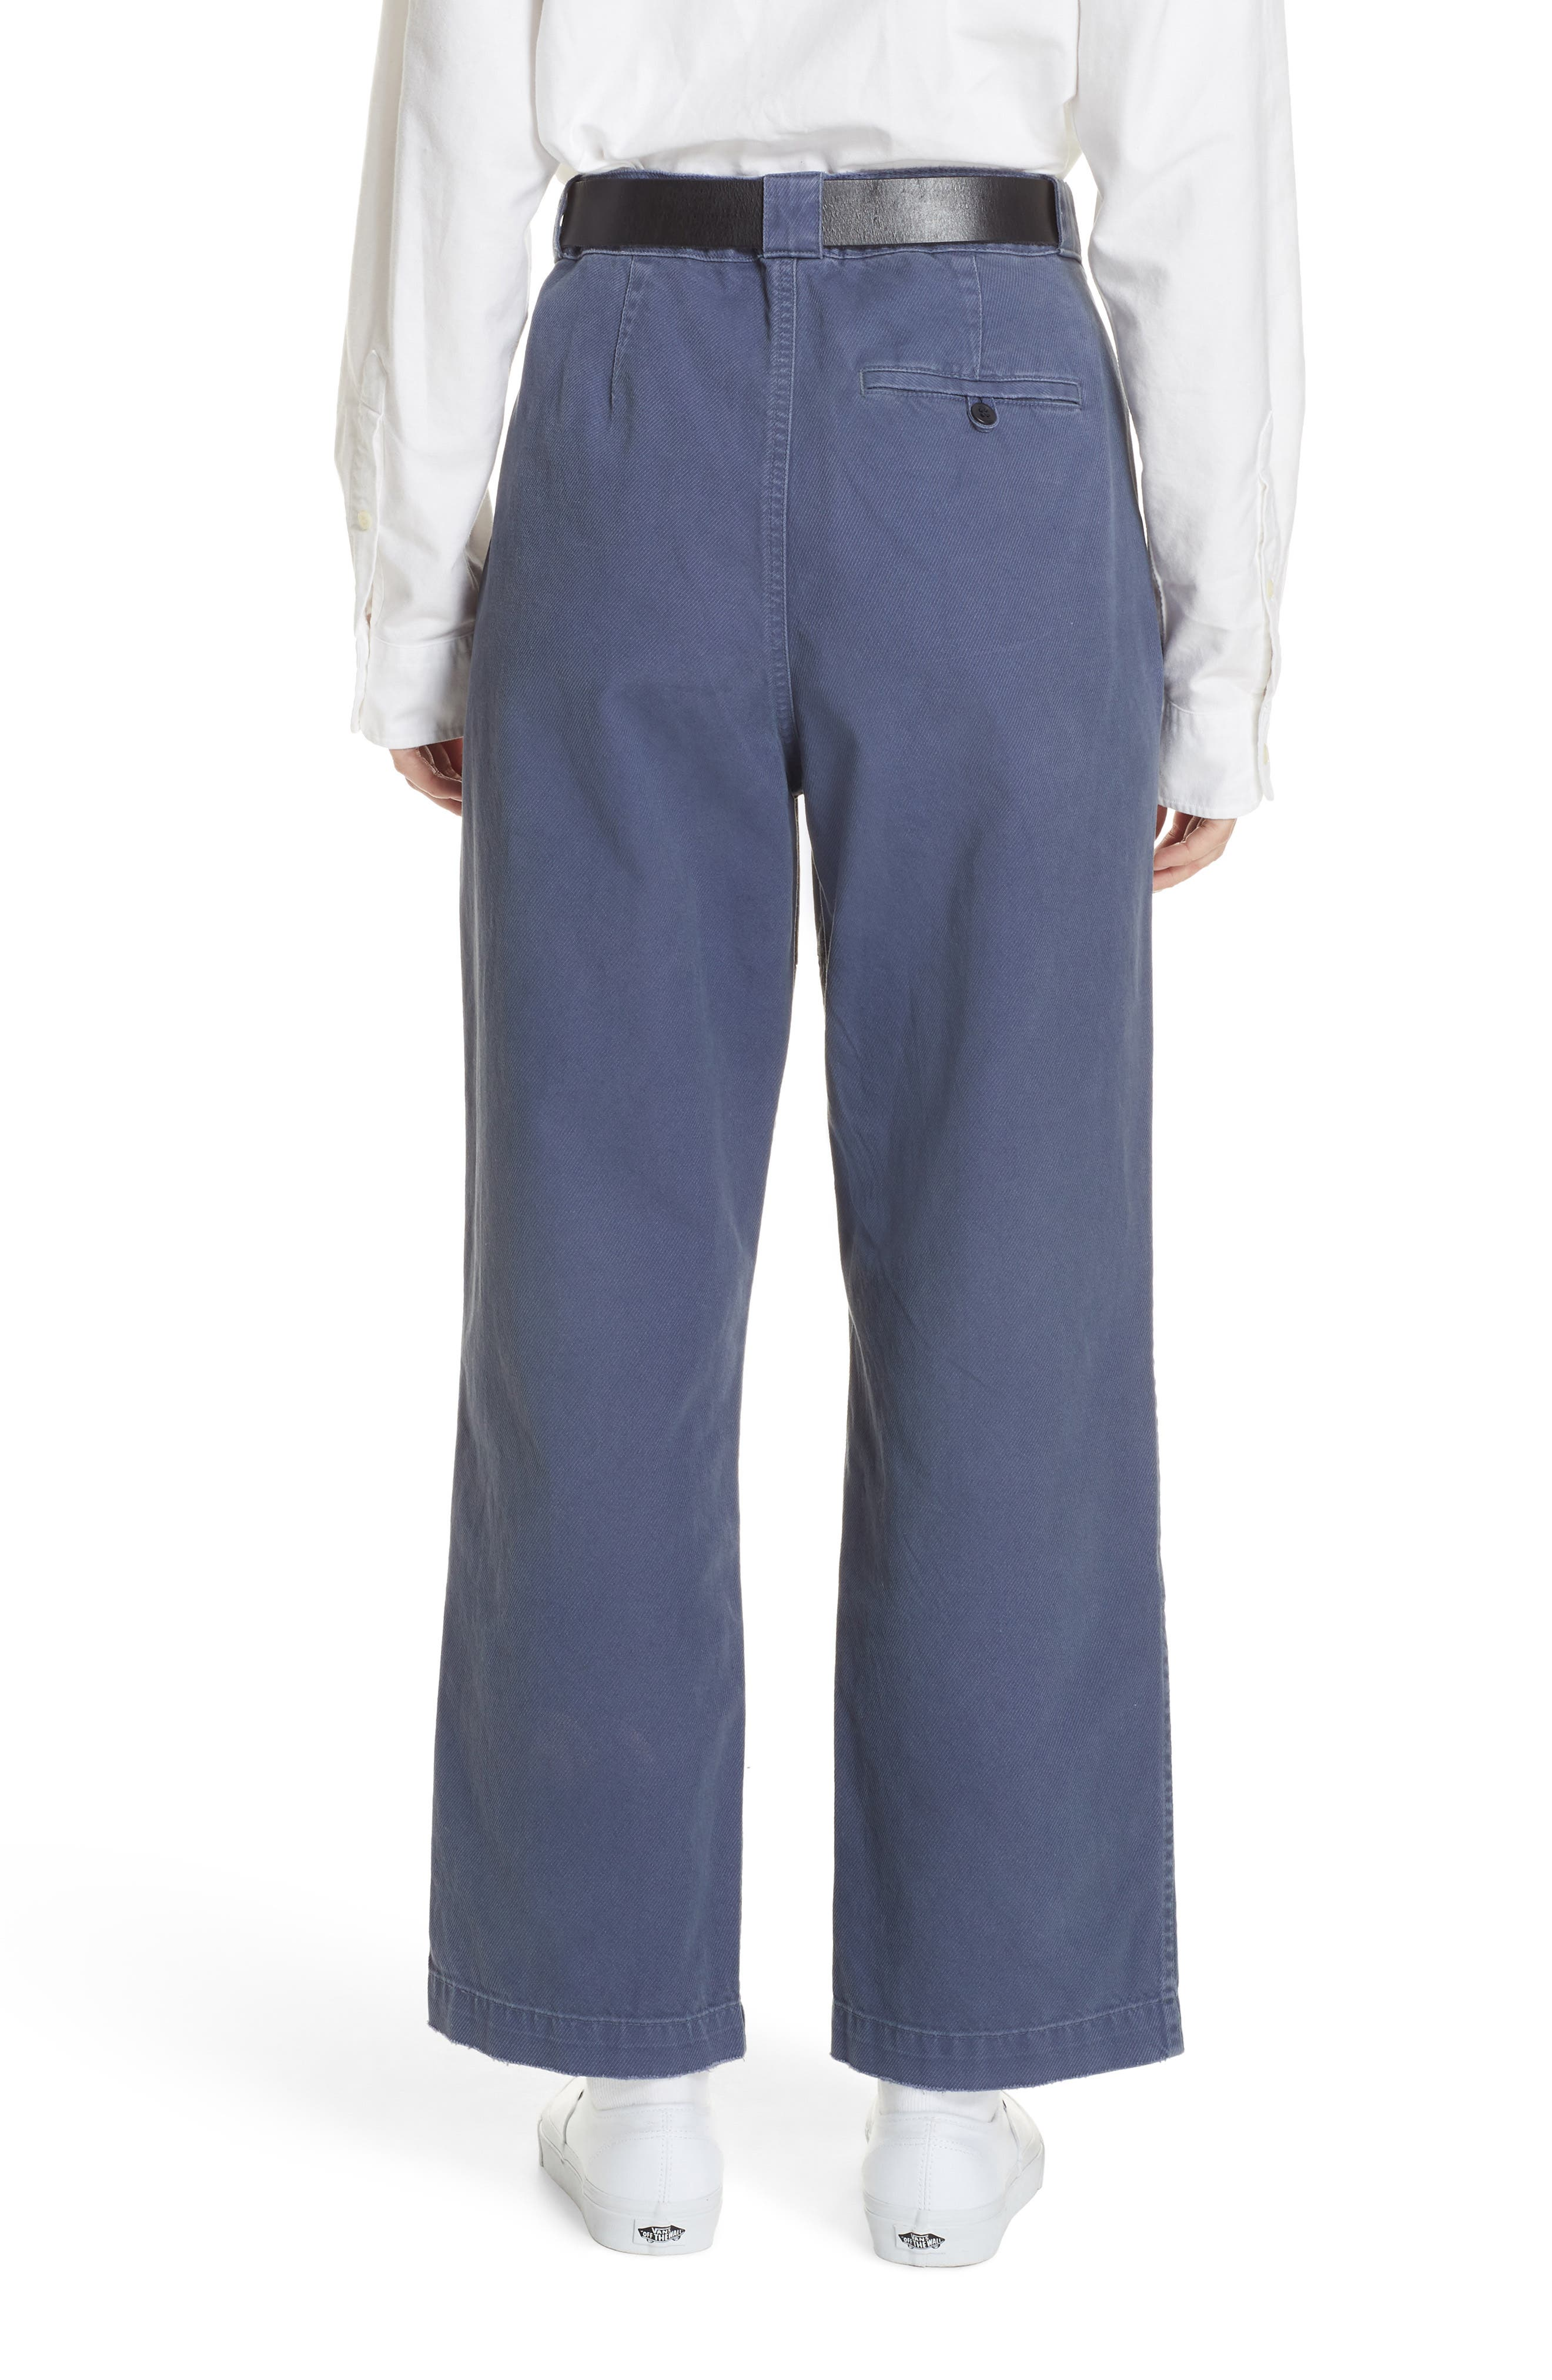 Patched Wide Leg Pants,                             Alternate thumbnail 2, color,                             NEW CLASSIC NAVY/ LIGHT NAVY